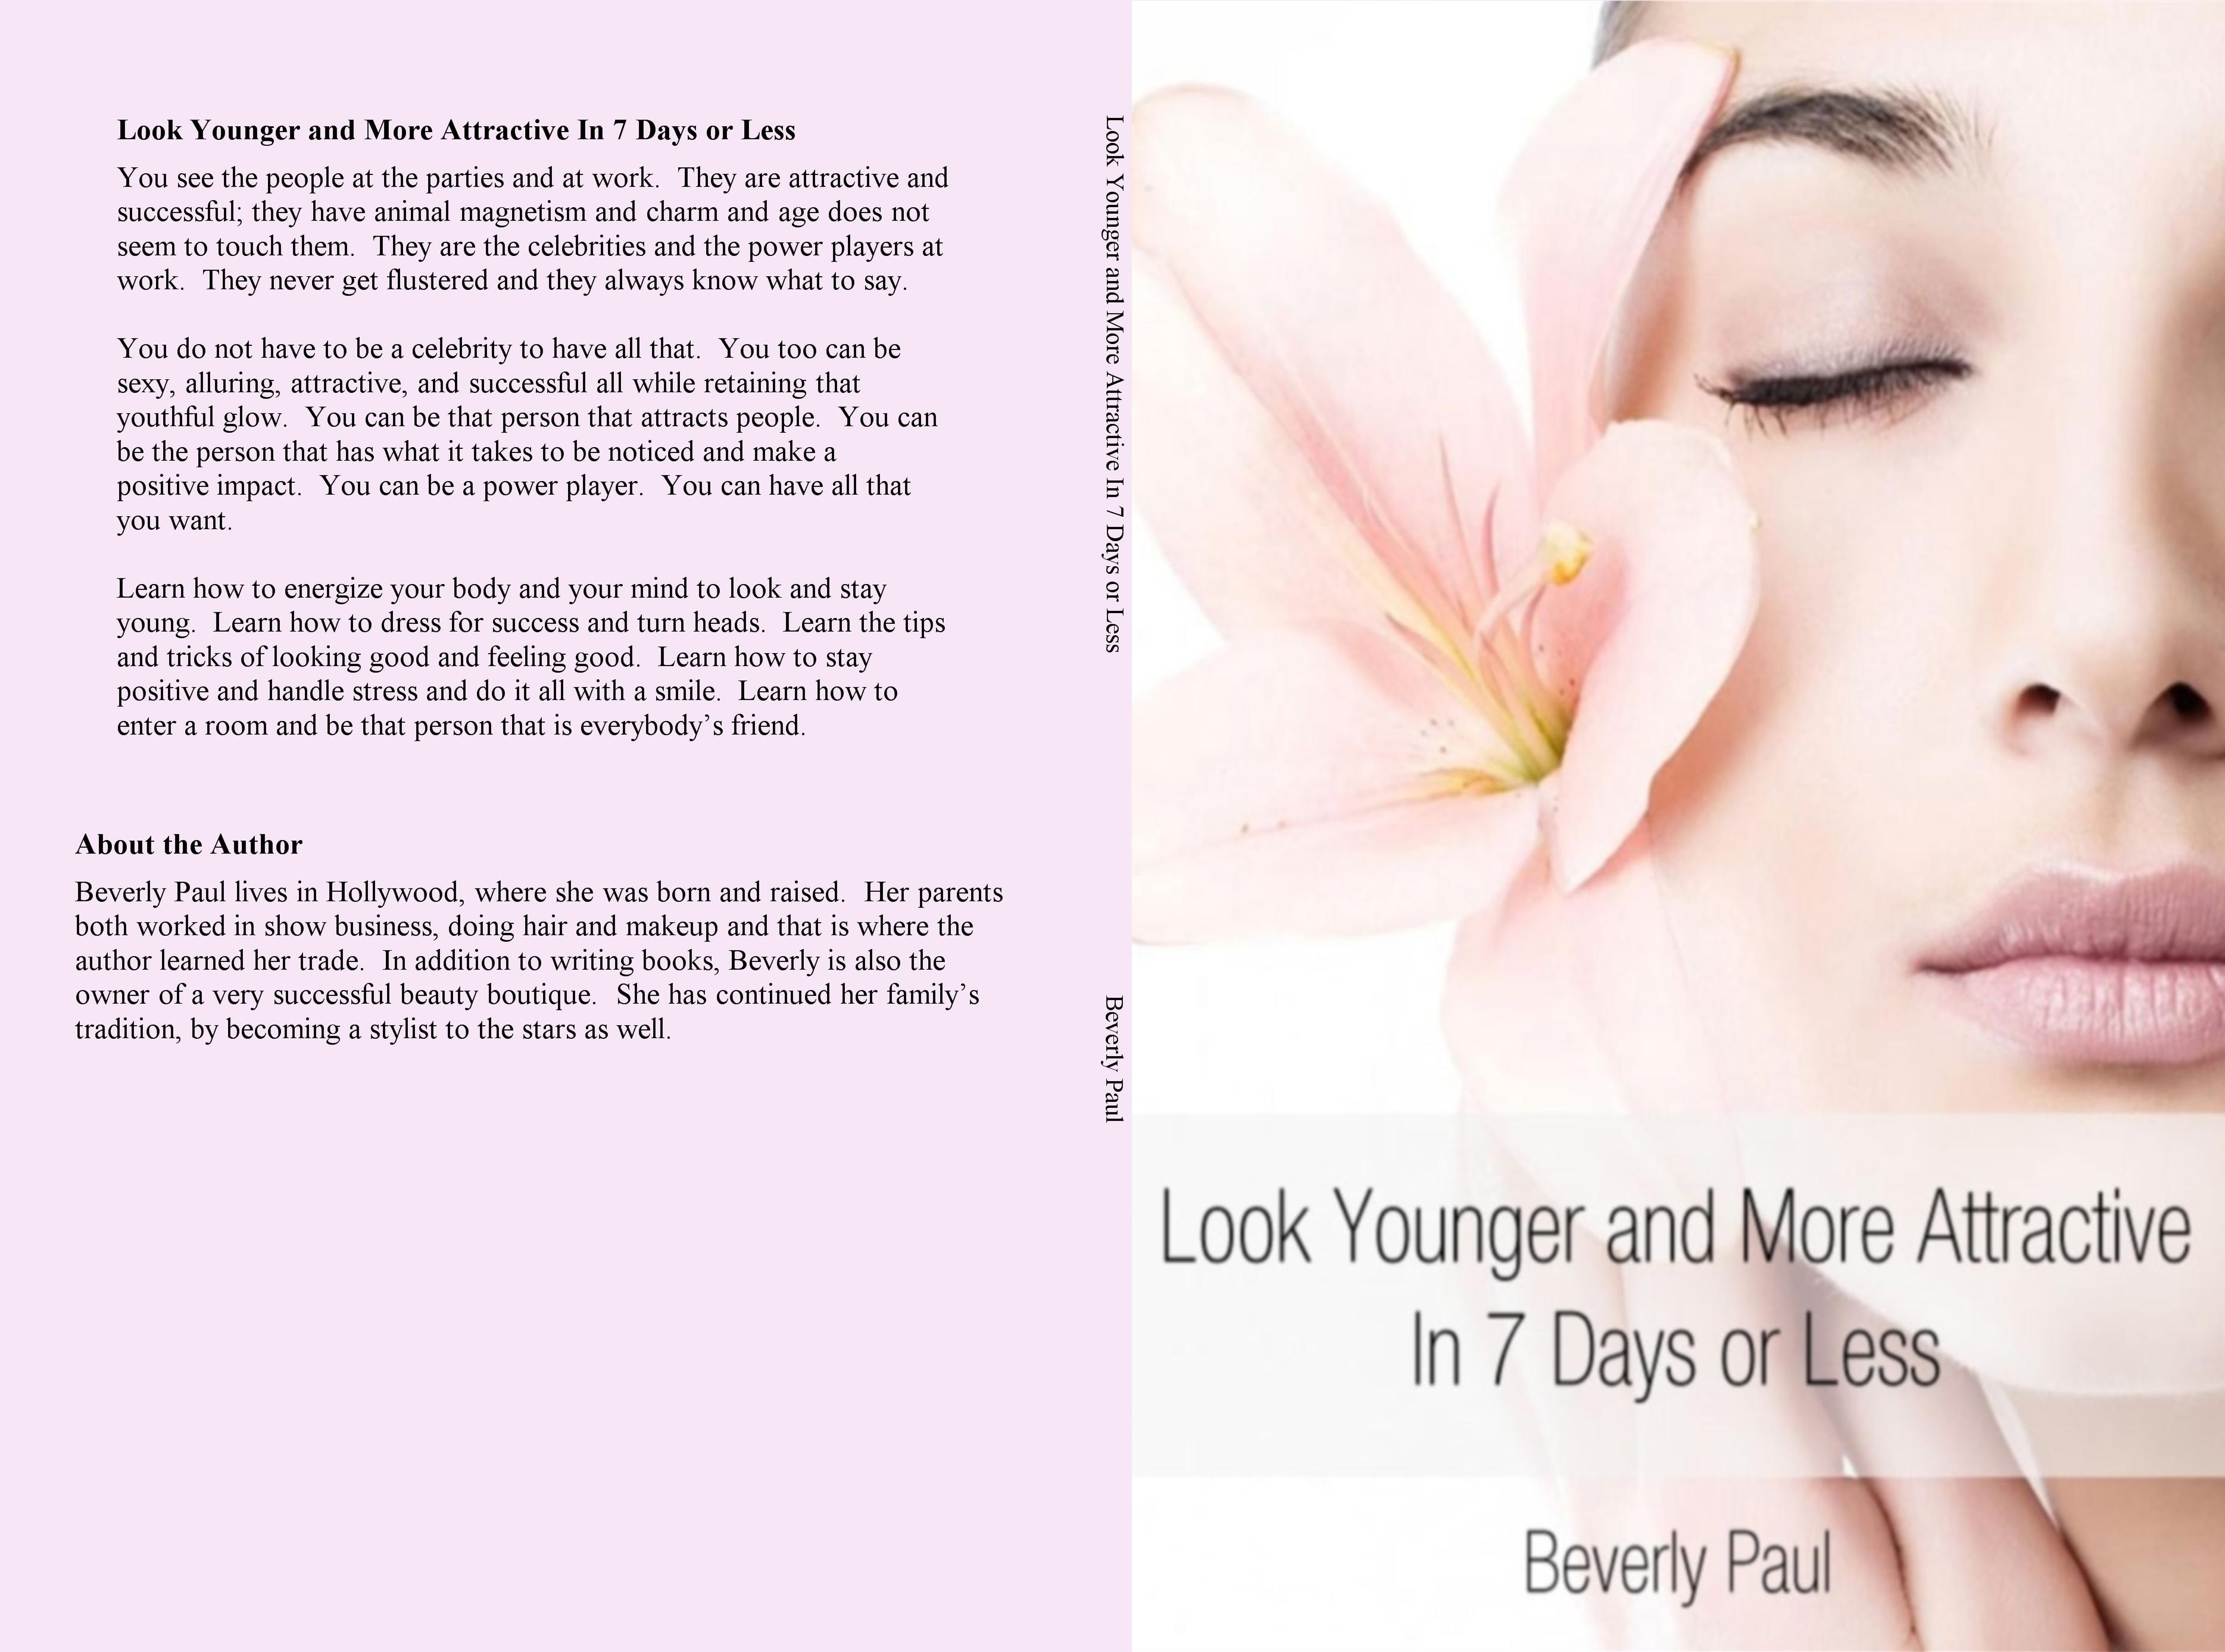 Look Younger and More Attractive In 7 Days or Less cover image